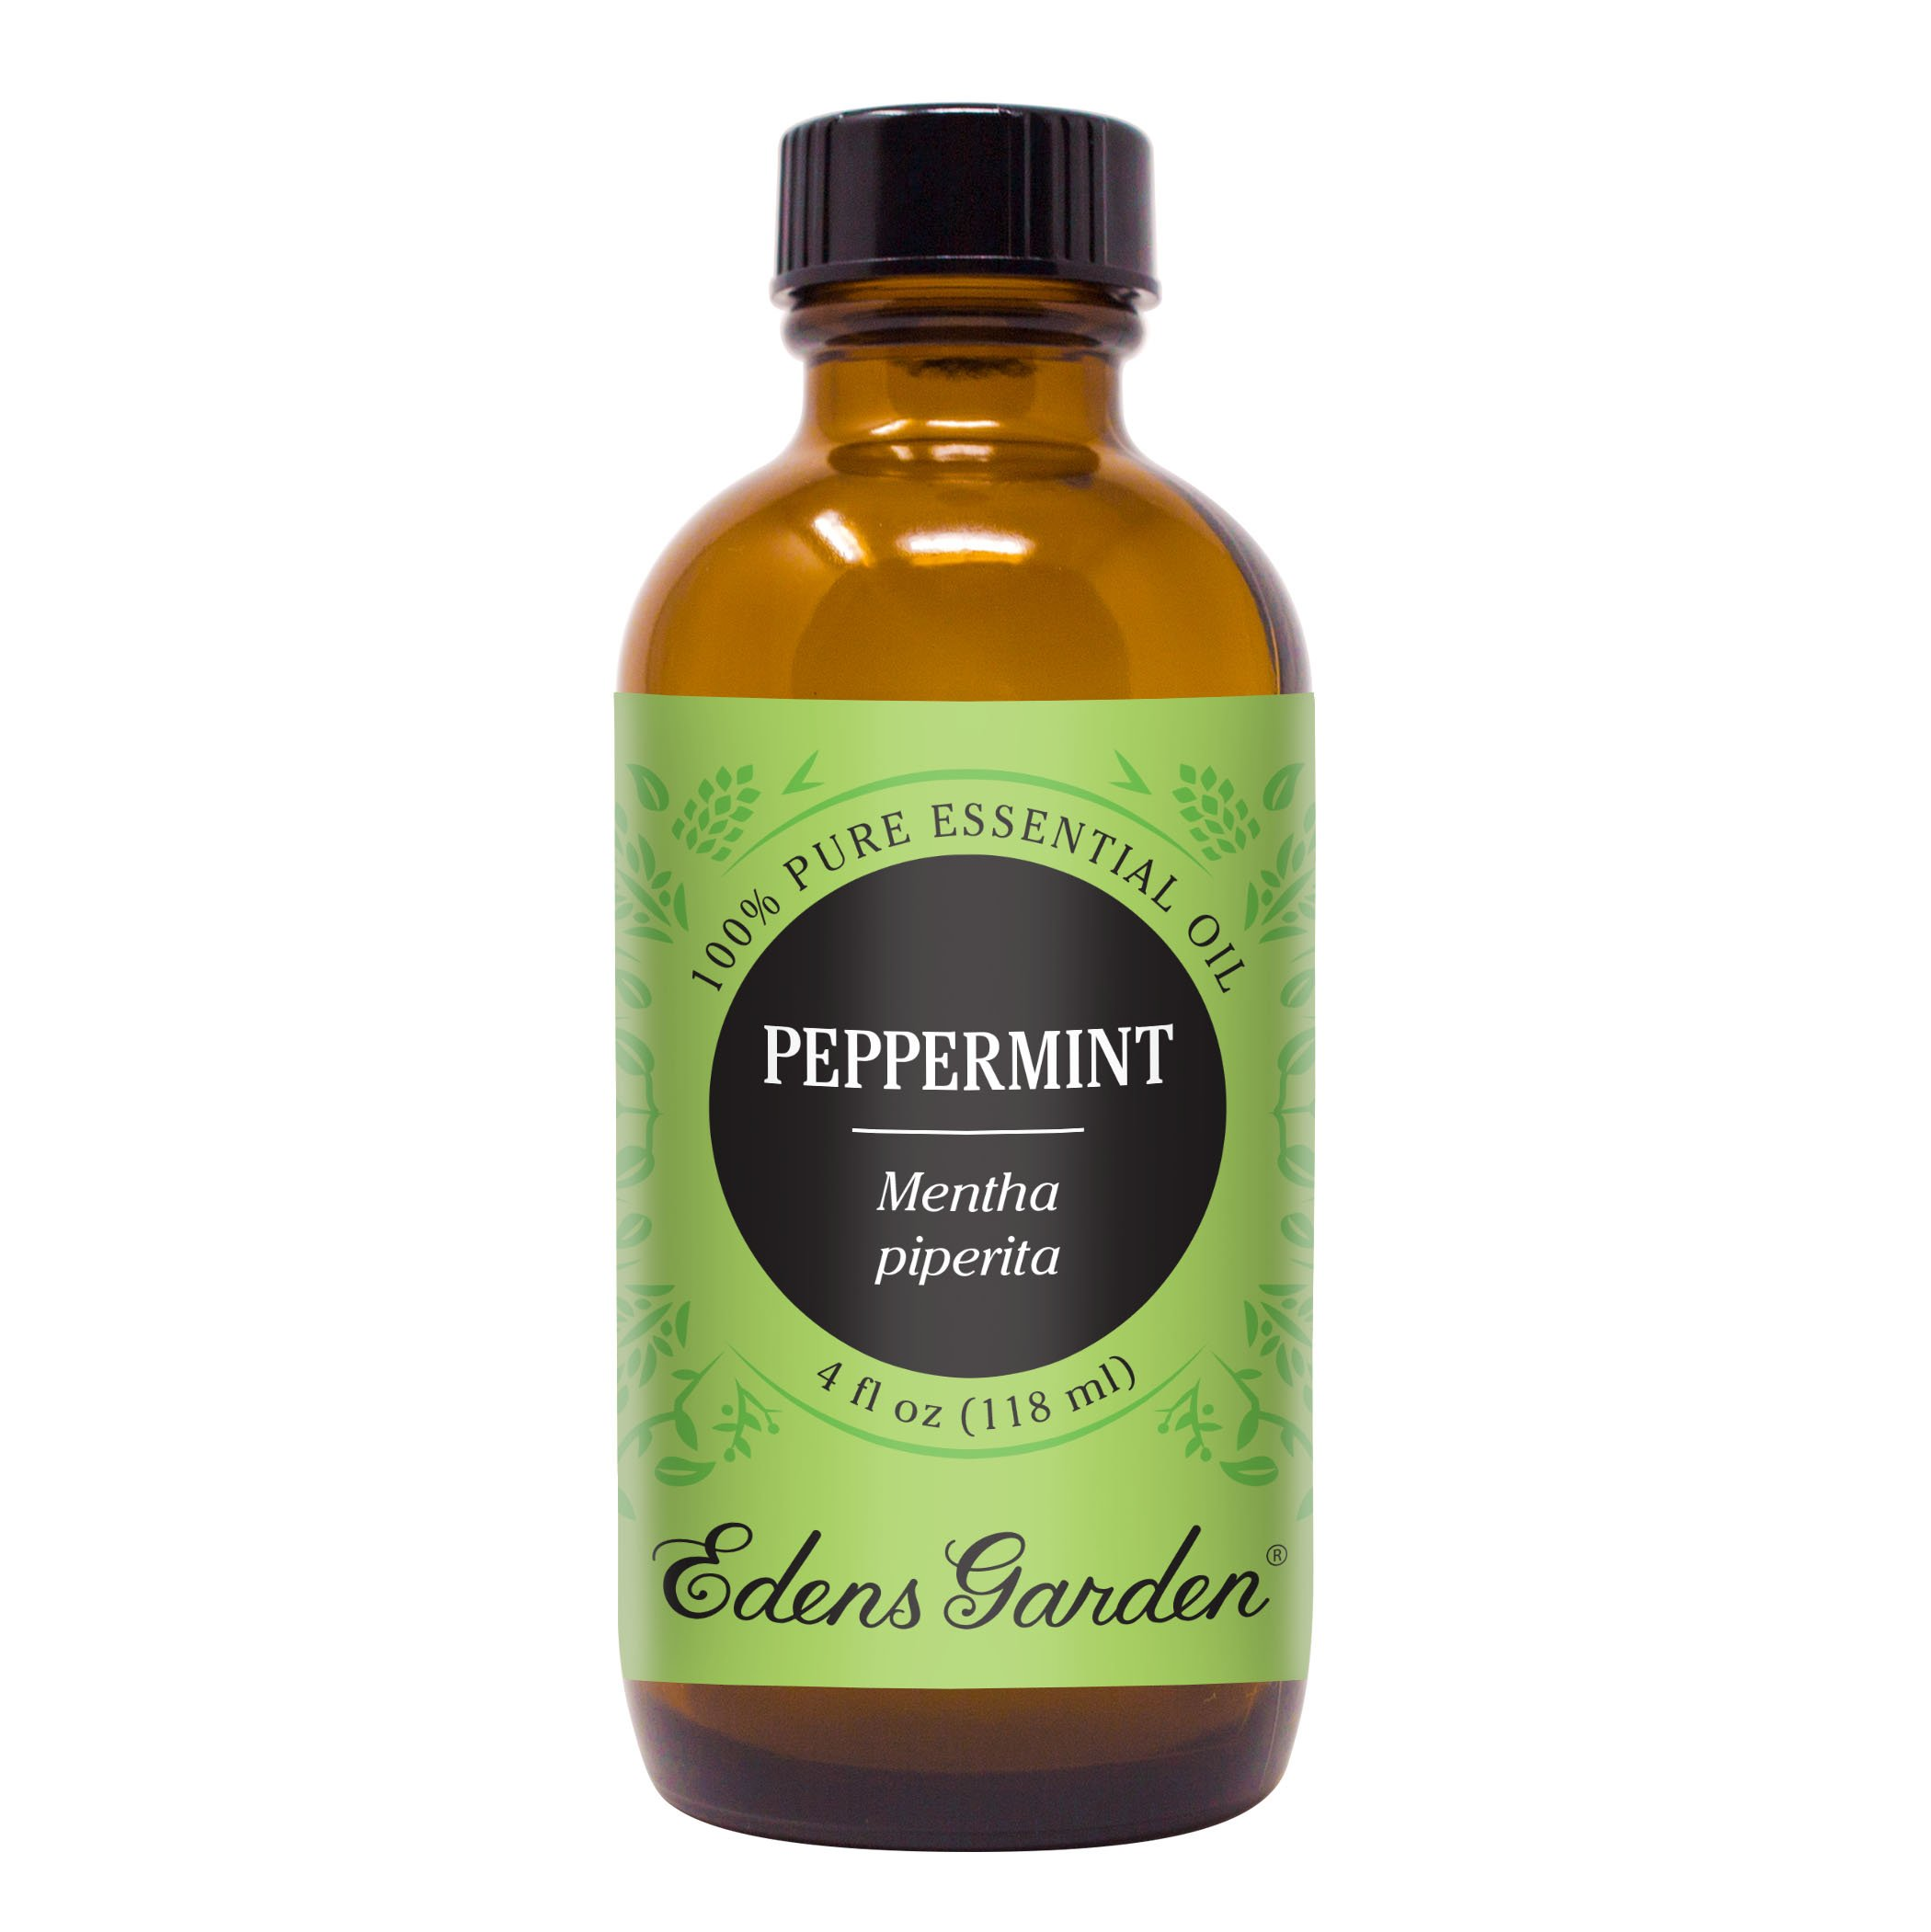 Edens Garden Peppermint Essential Oil, 100% Pure Therapeutic Grade (Highest Quality Aromatherapy Oils- Digestion & Energy), 118 ml by Edens Garden